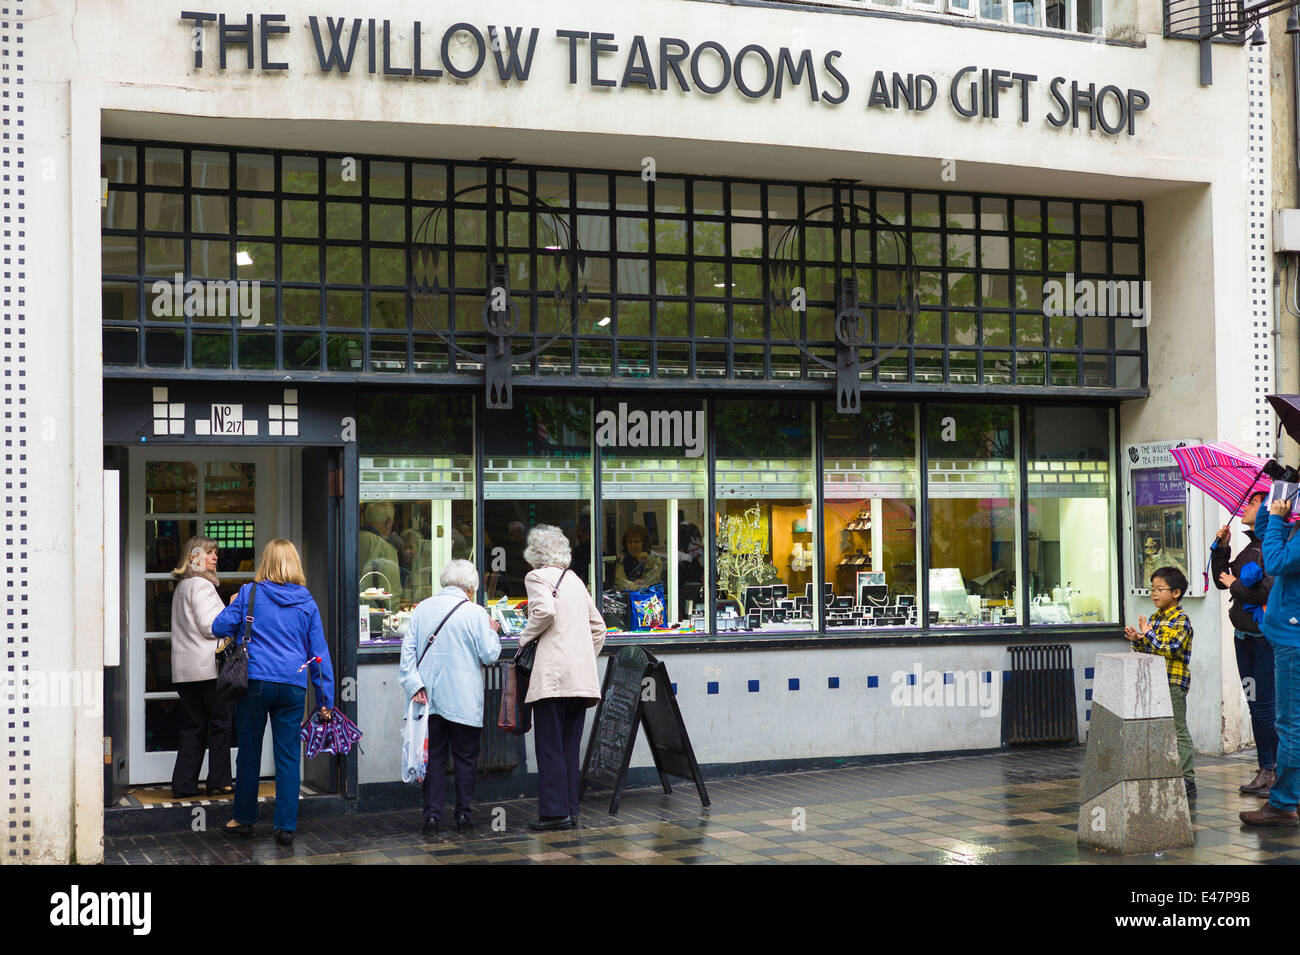 The Willow Tearooms and Gift Shop designed by Charles Rennie Mackintosh in 1903 in Sauciehall Street, Glasgow, SCOTLAND, - Stock Image